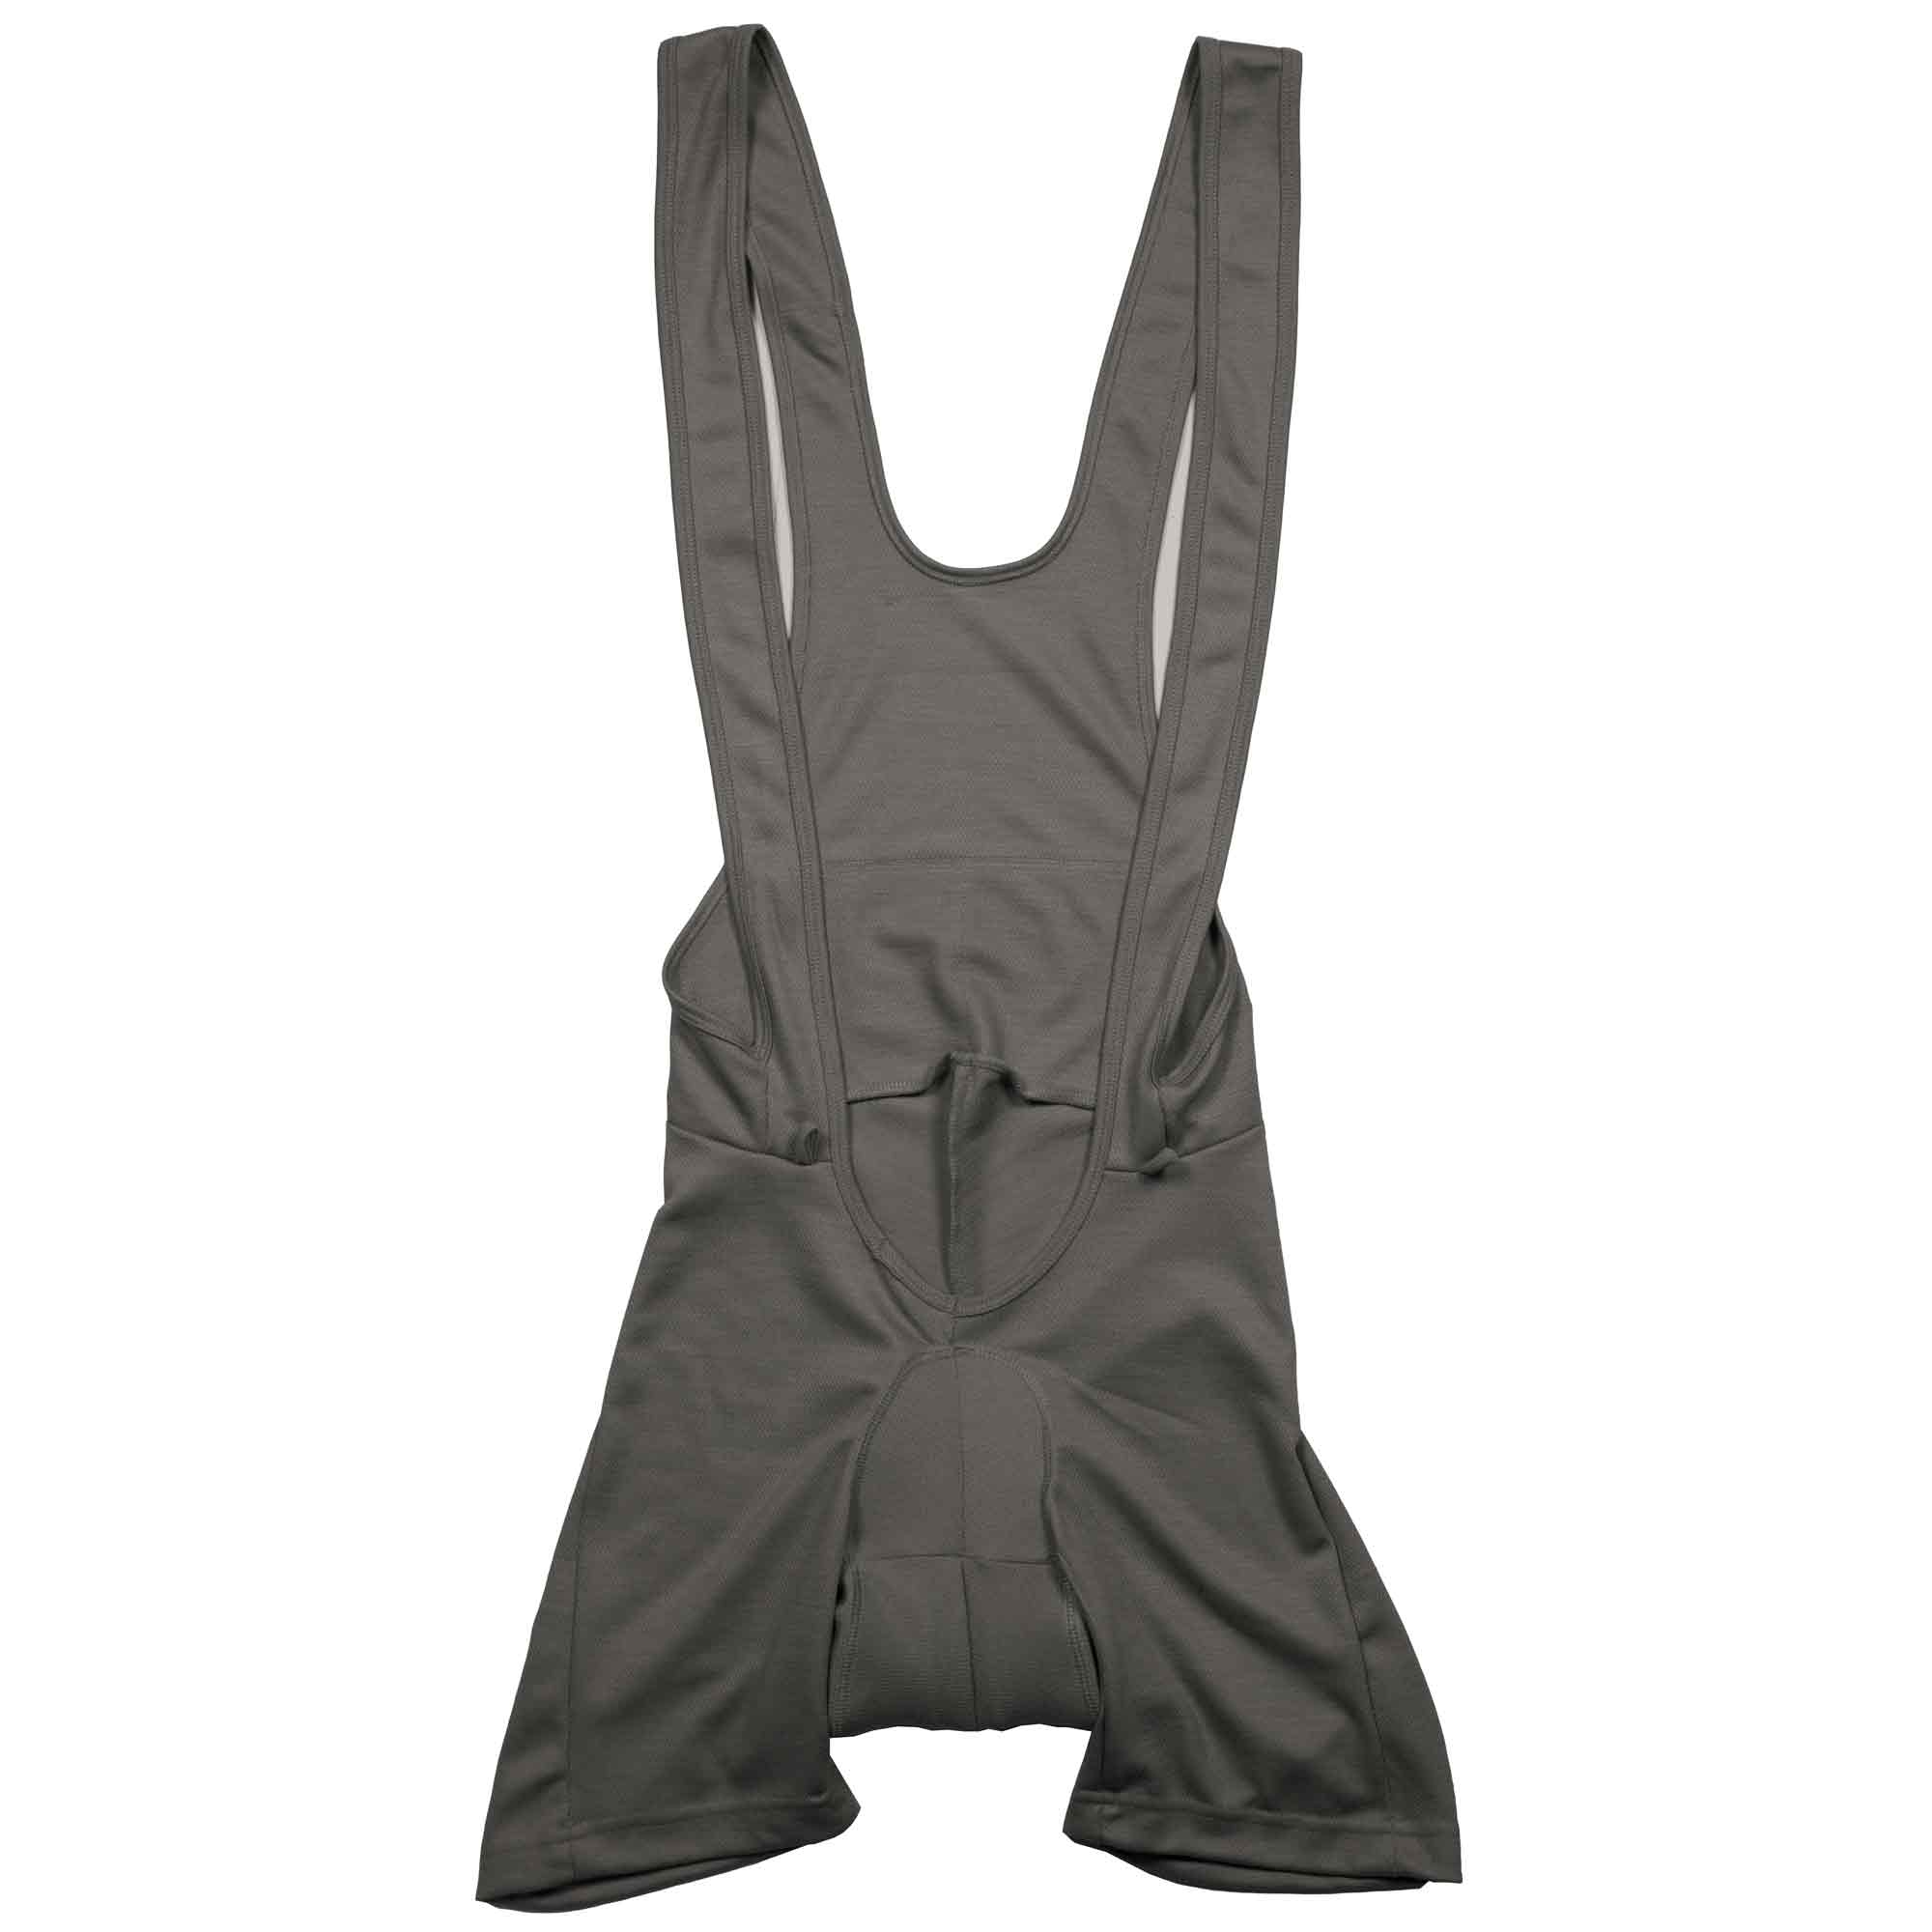 Merino off road bib short